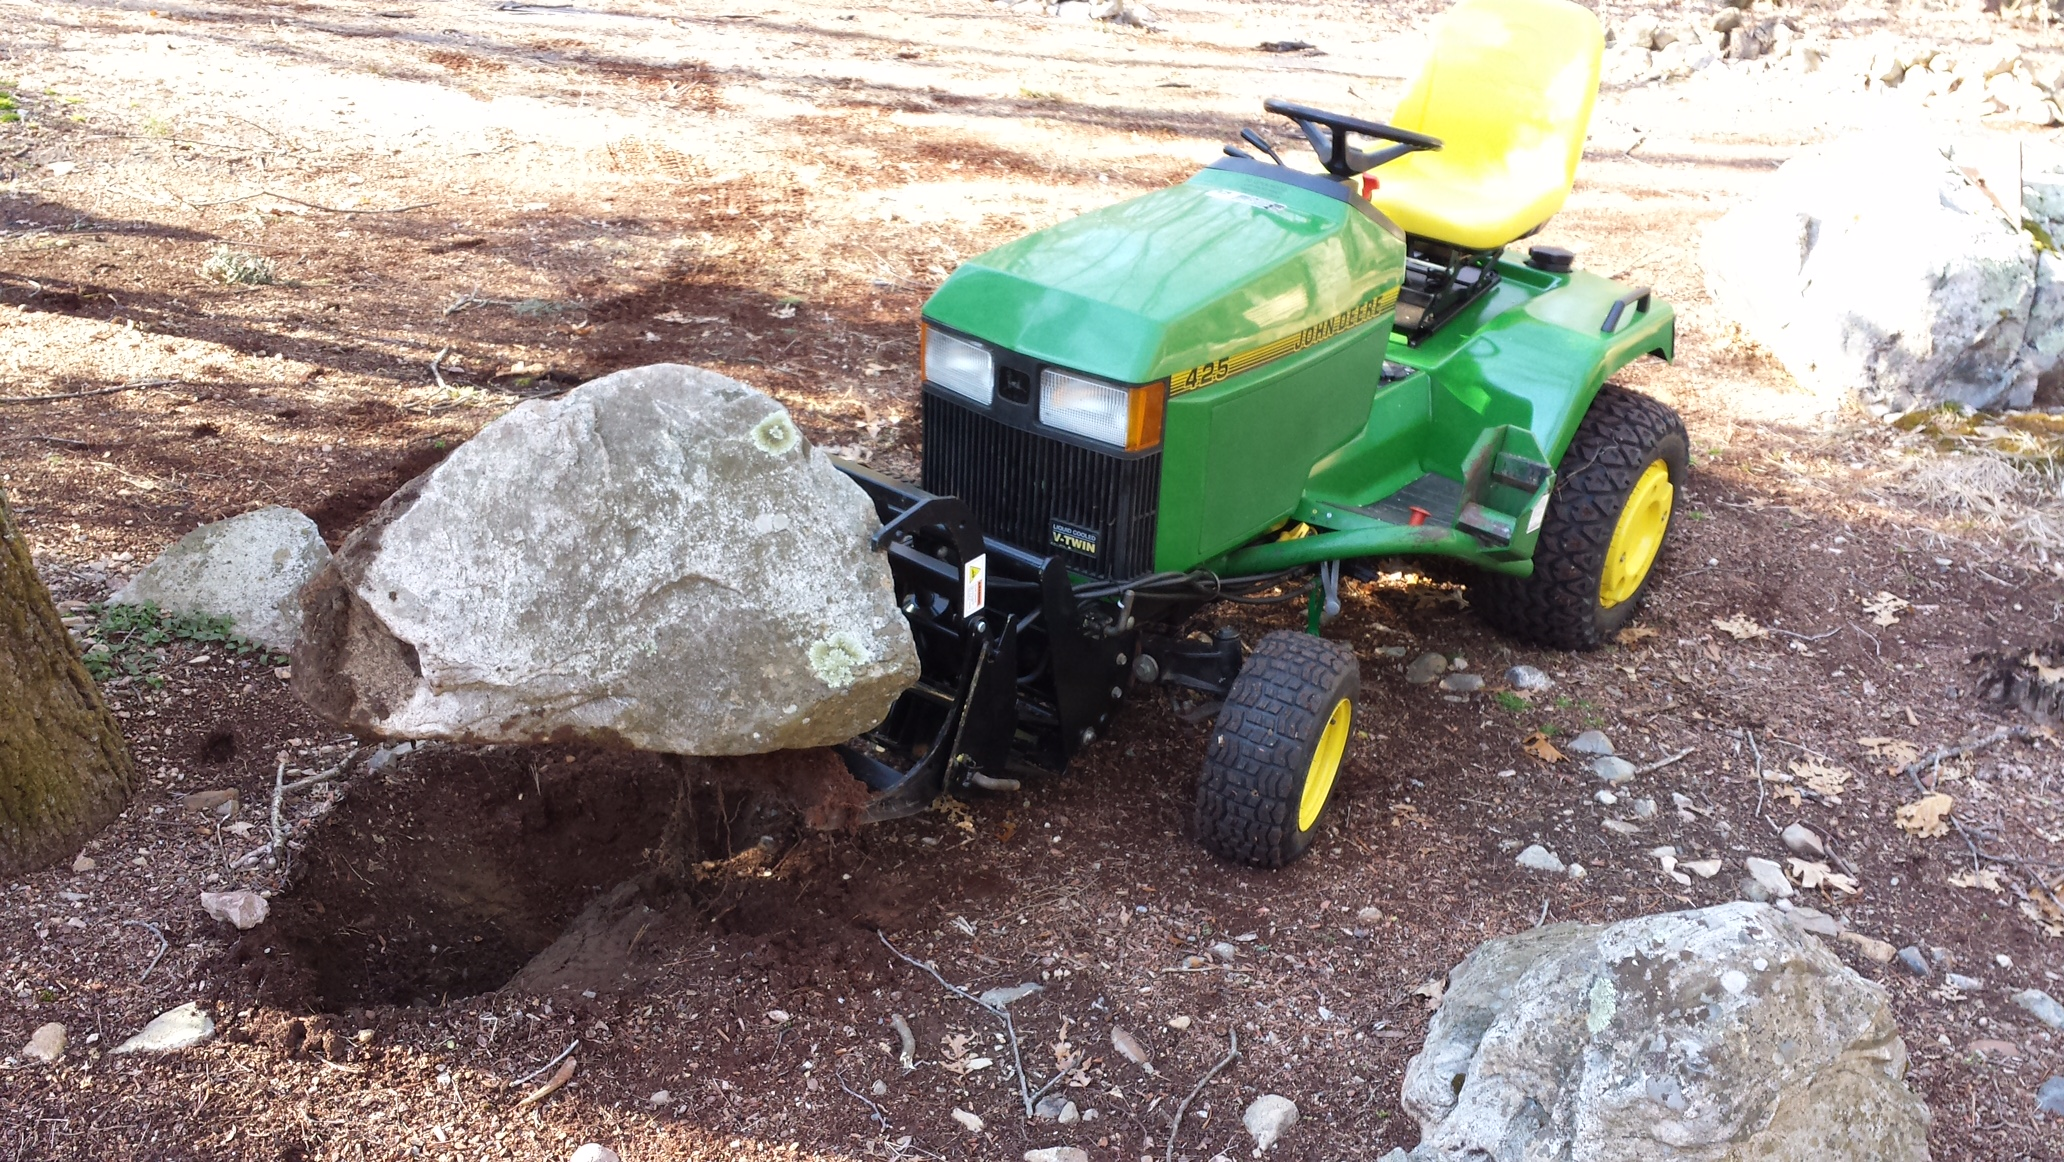 Tractor Bucket Attachments : Products innovative tractor attachments llc